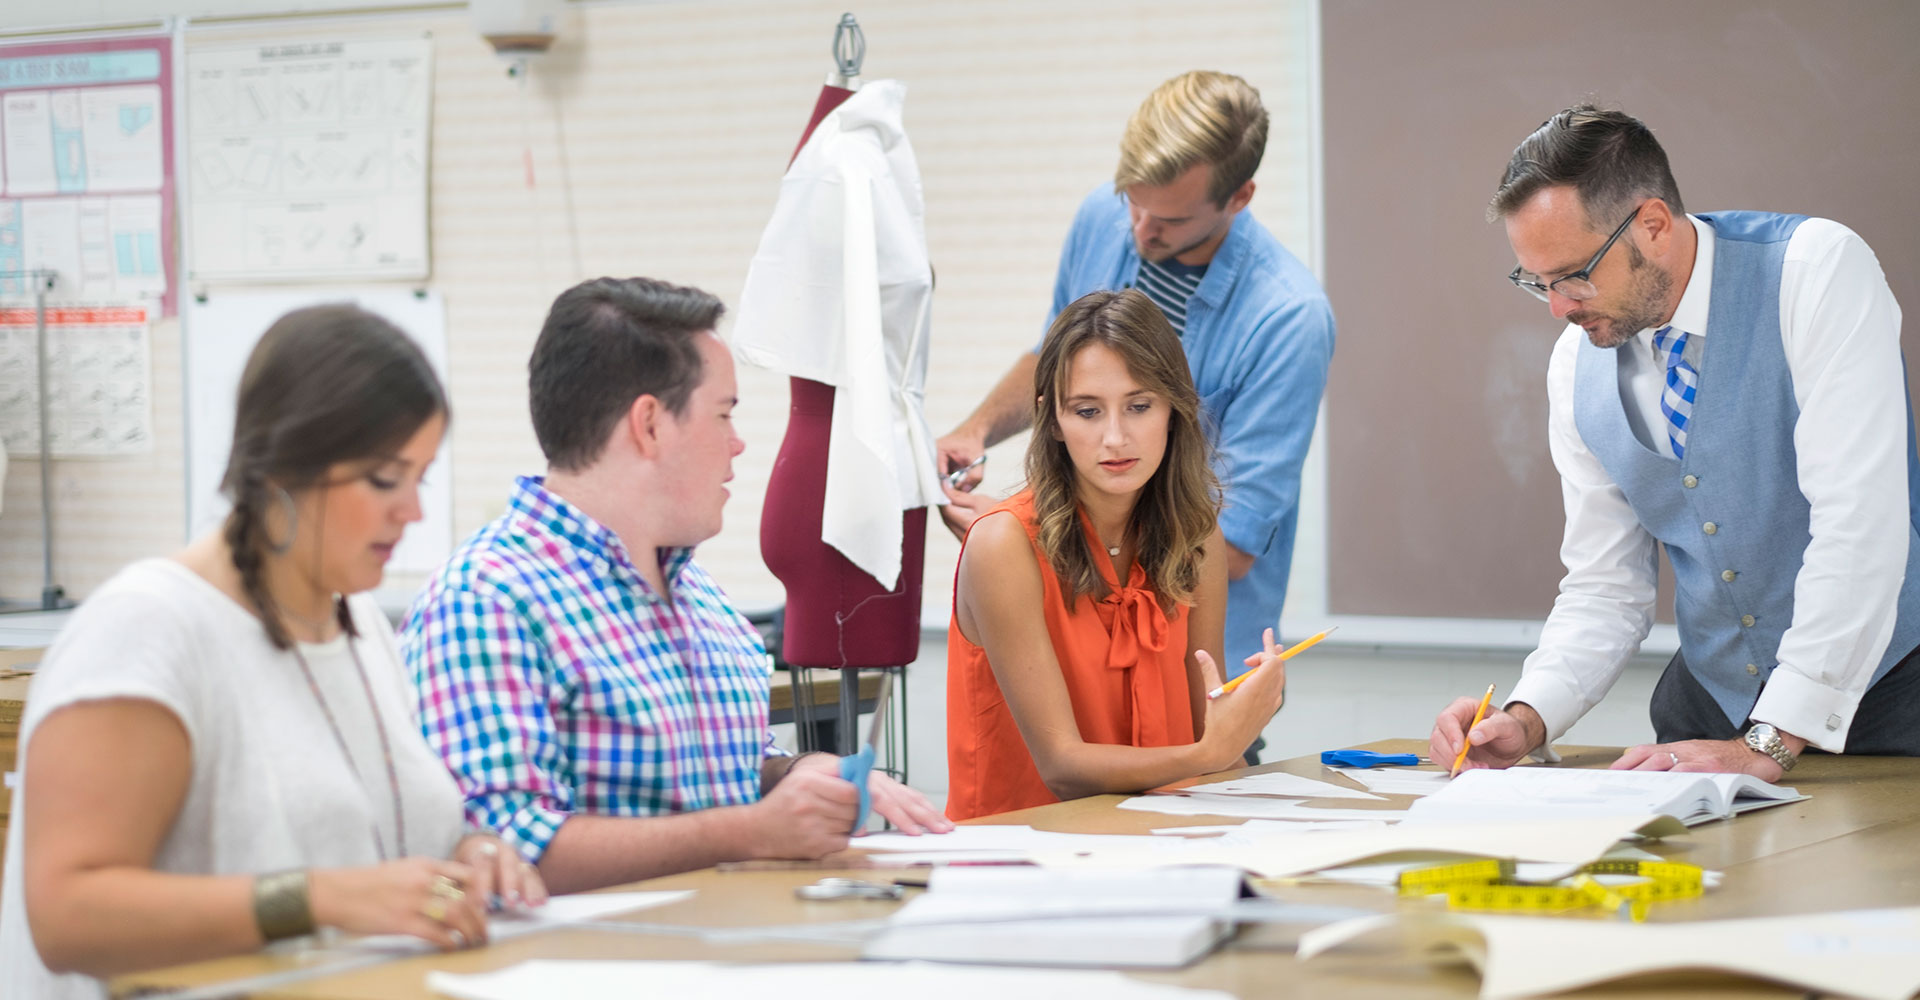 What Is Fashion Retailing And Merchandising